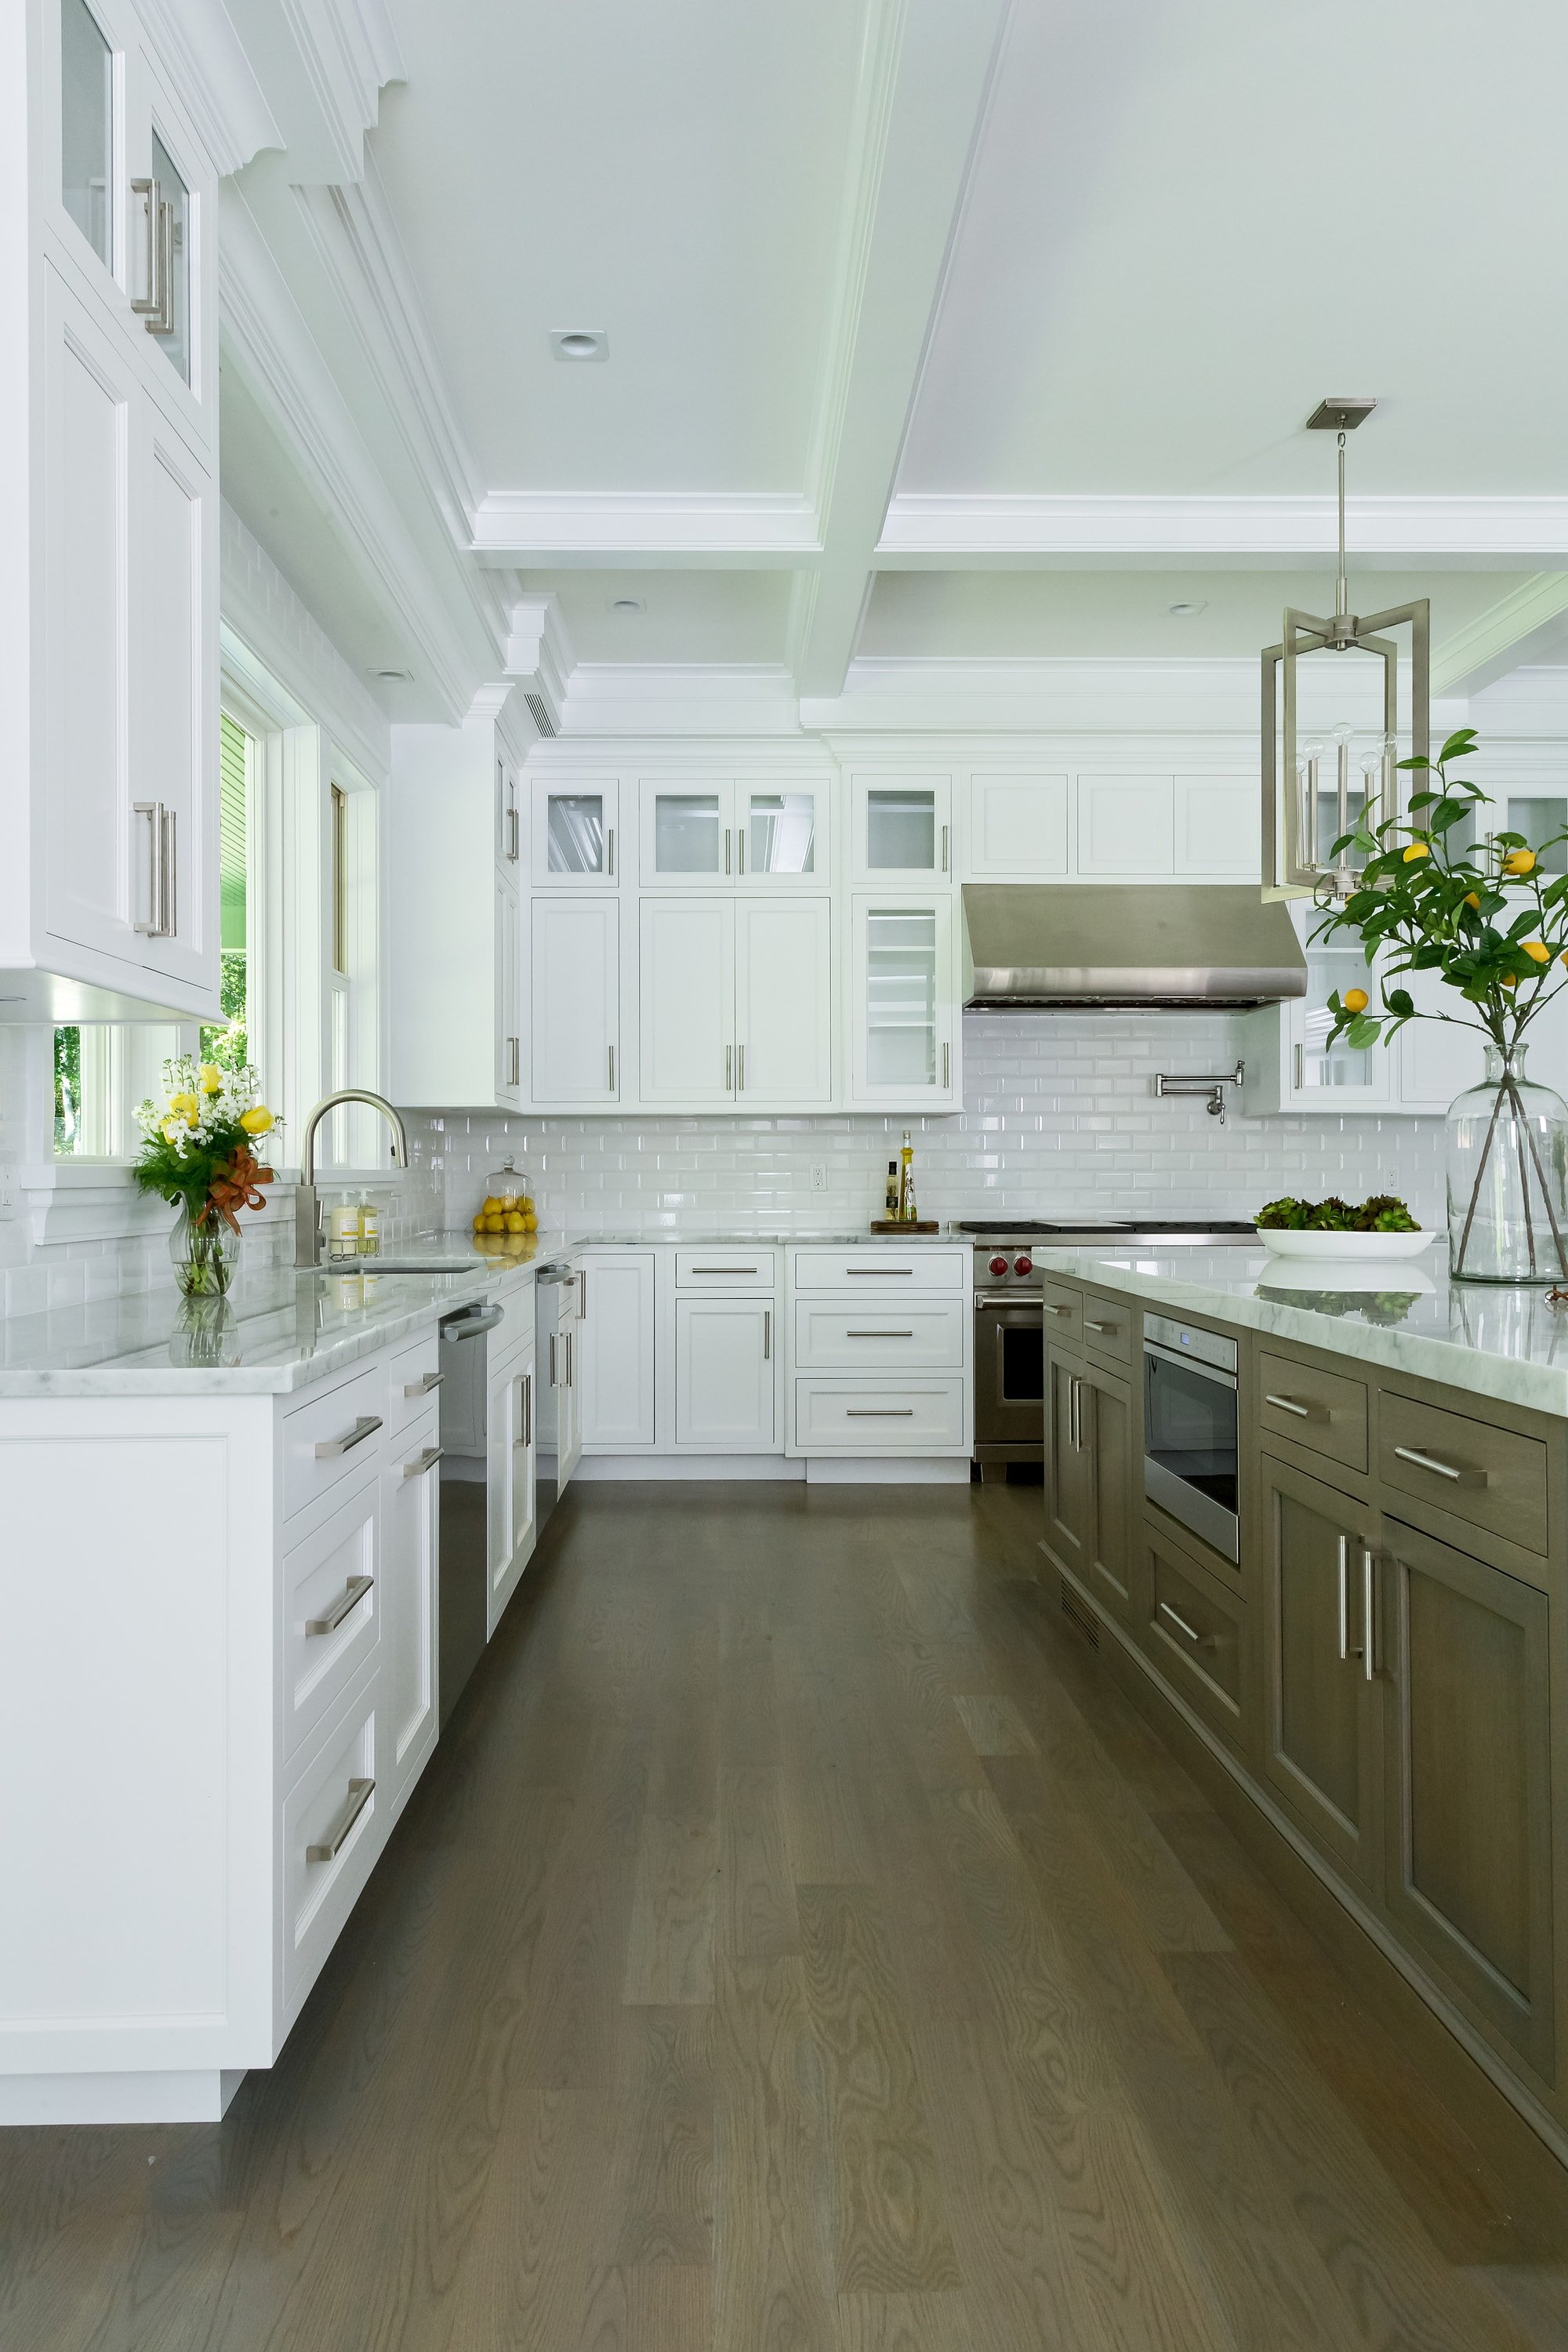 Copy of Transitional style kitchen with upper cabinets